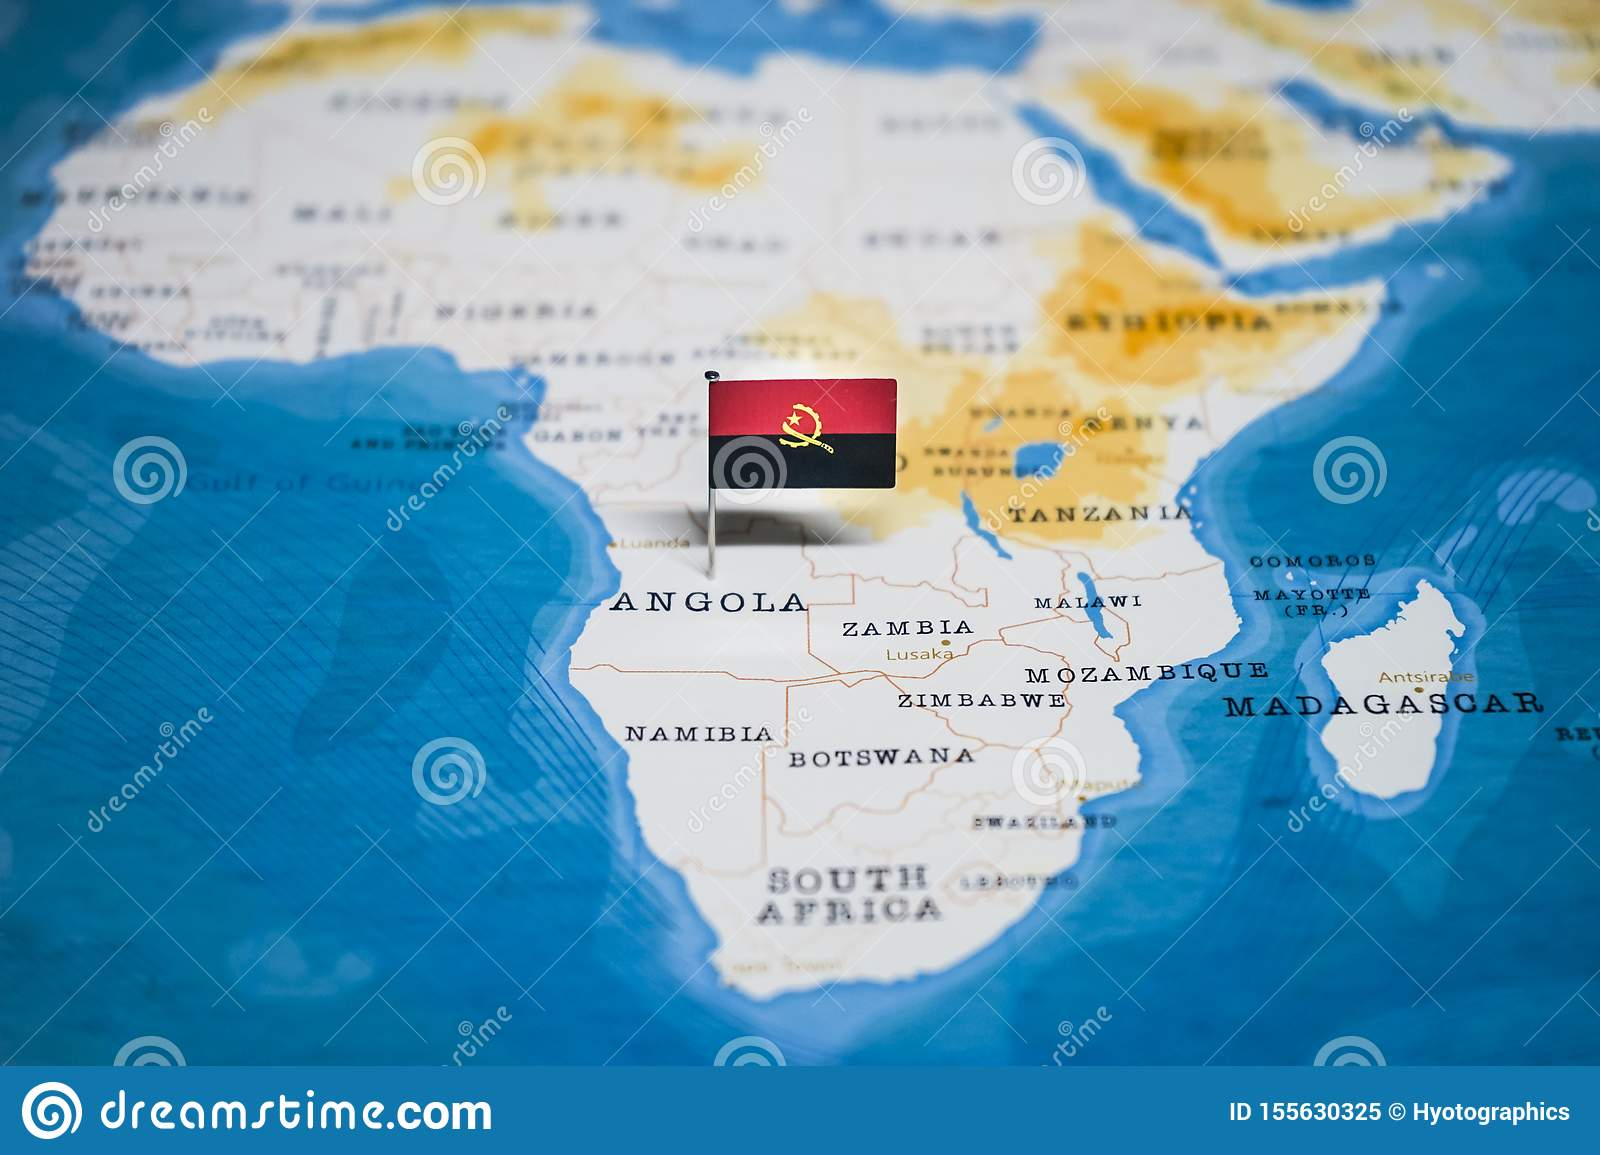 290 Angola Map Photos Free Royalty Free Stock Photos From Dreamstime